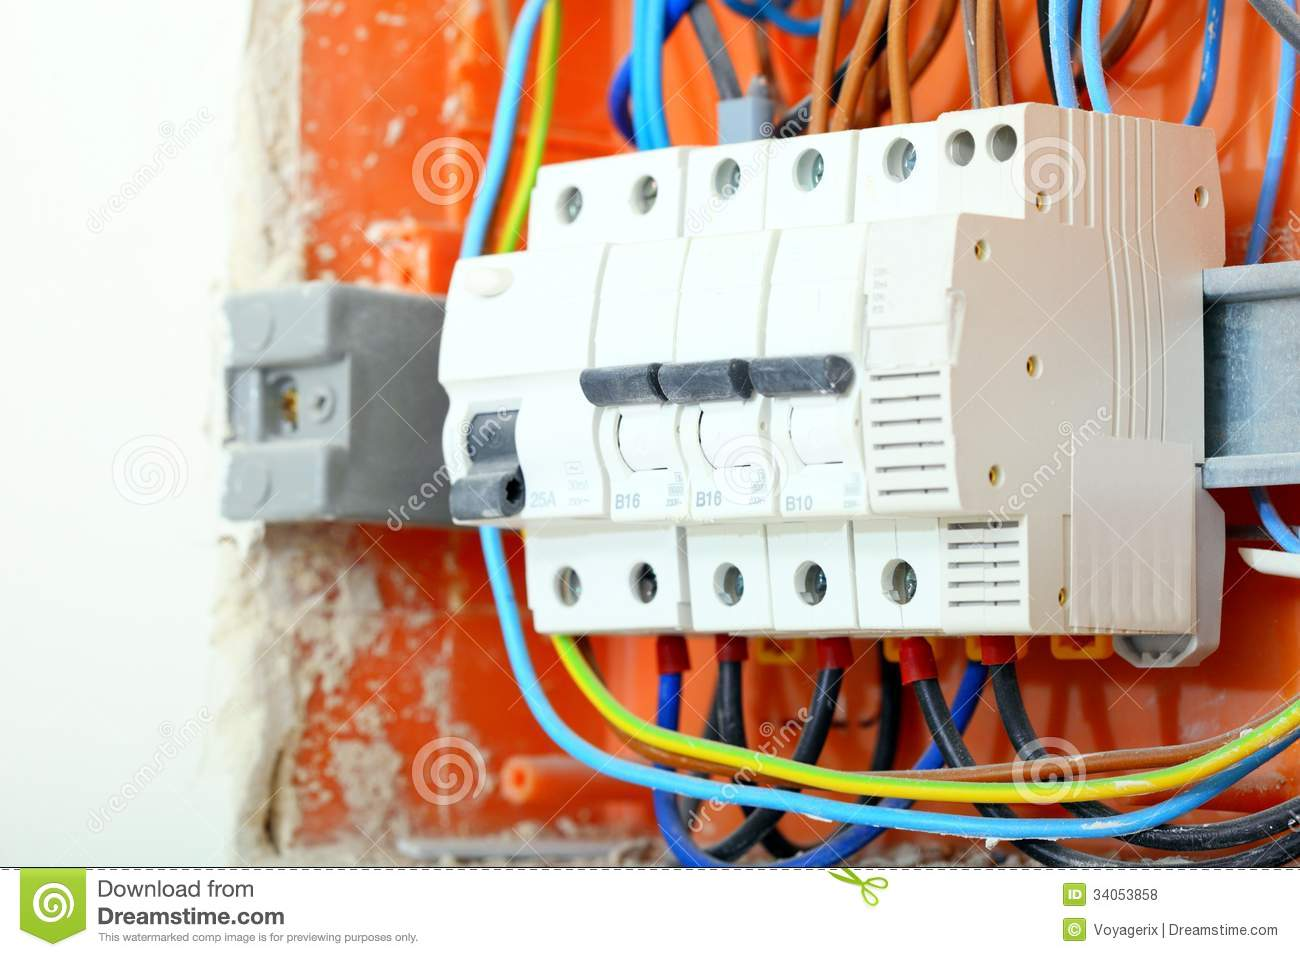 hight resolution of electrical panel box with fuses and contactors